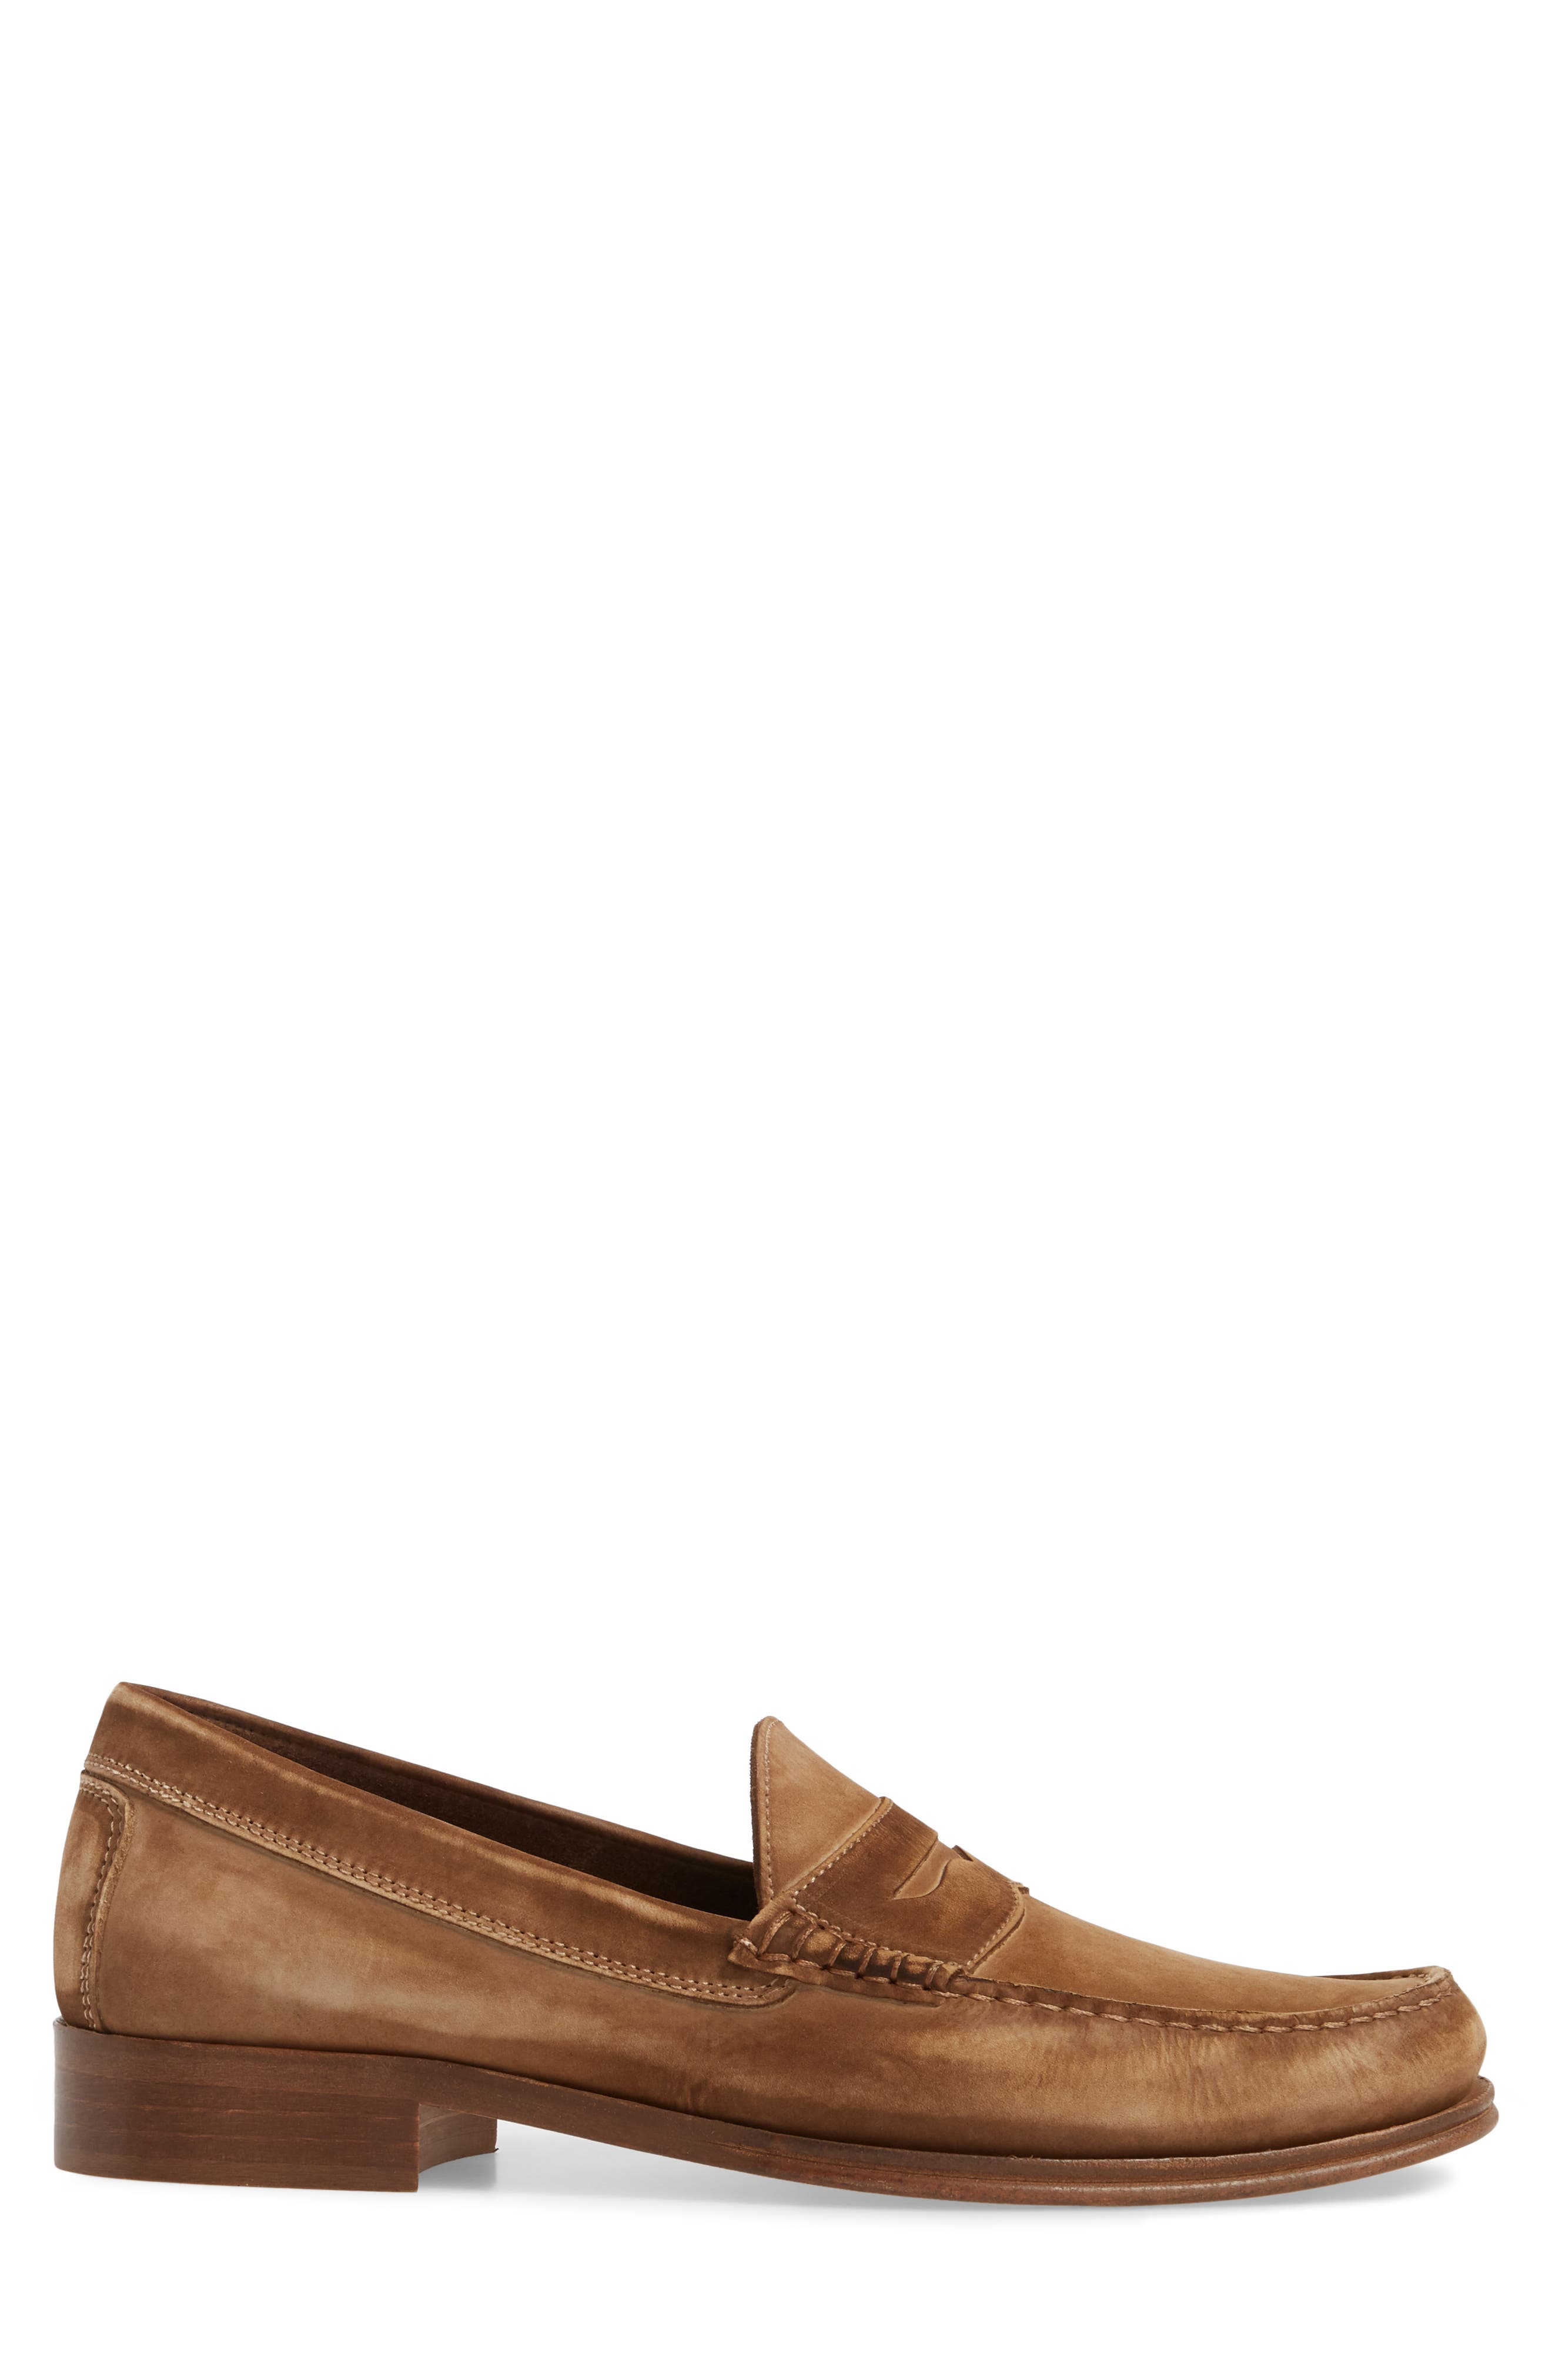 Nicola Penny Loafer,                             Alternate thumbnail 3, color,                             205